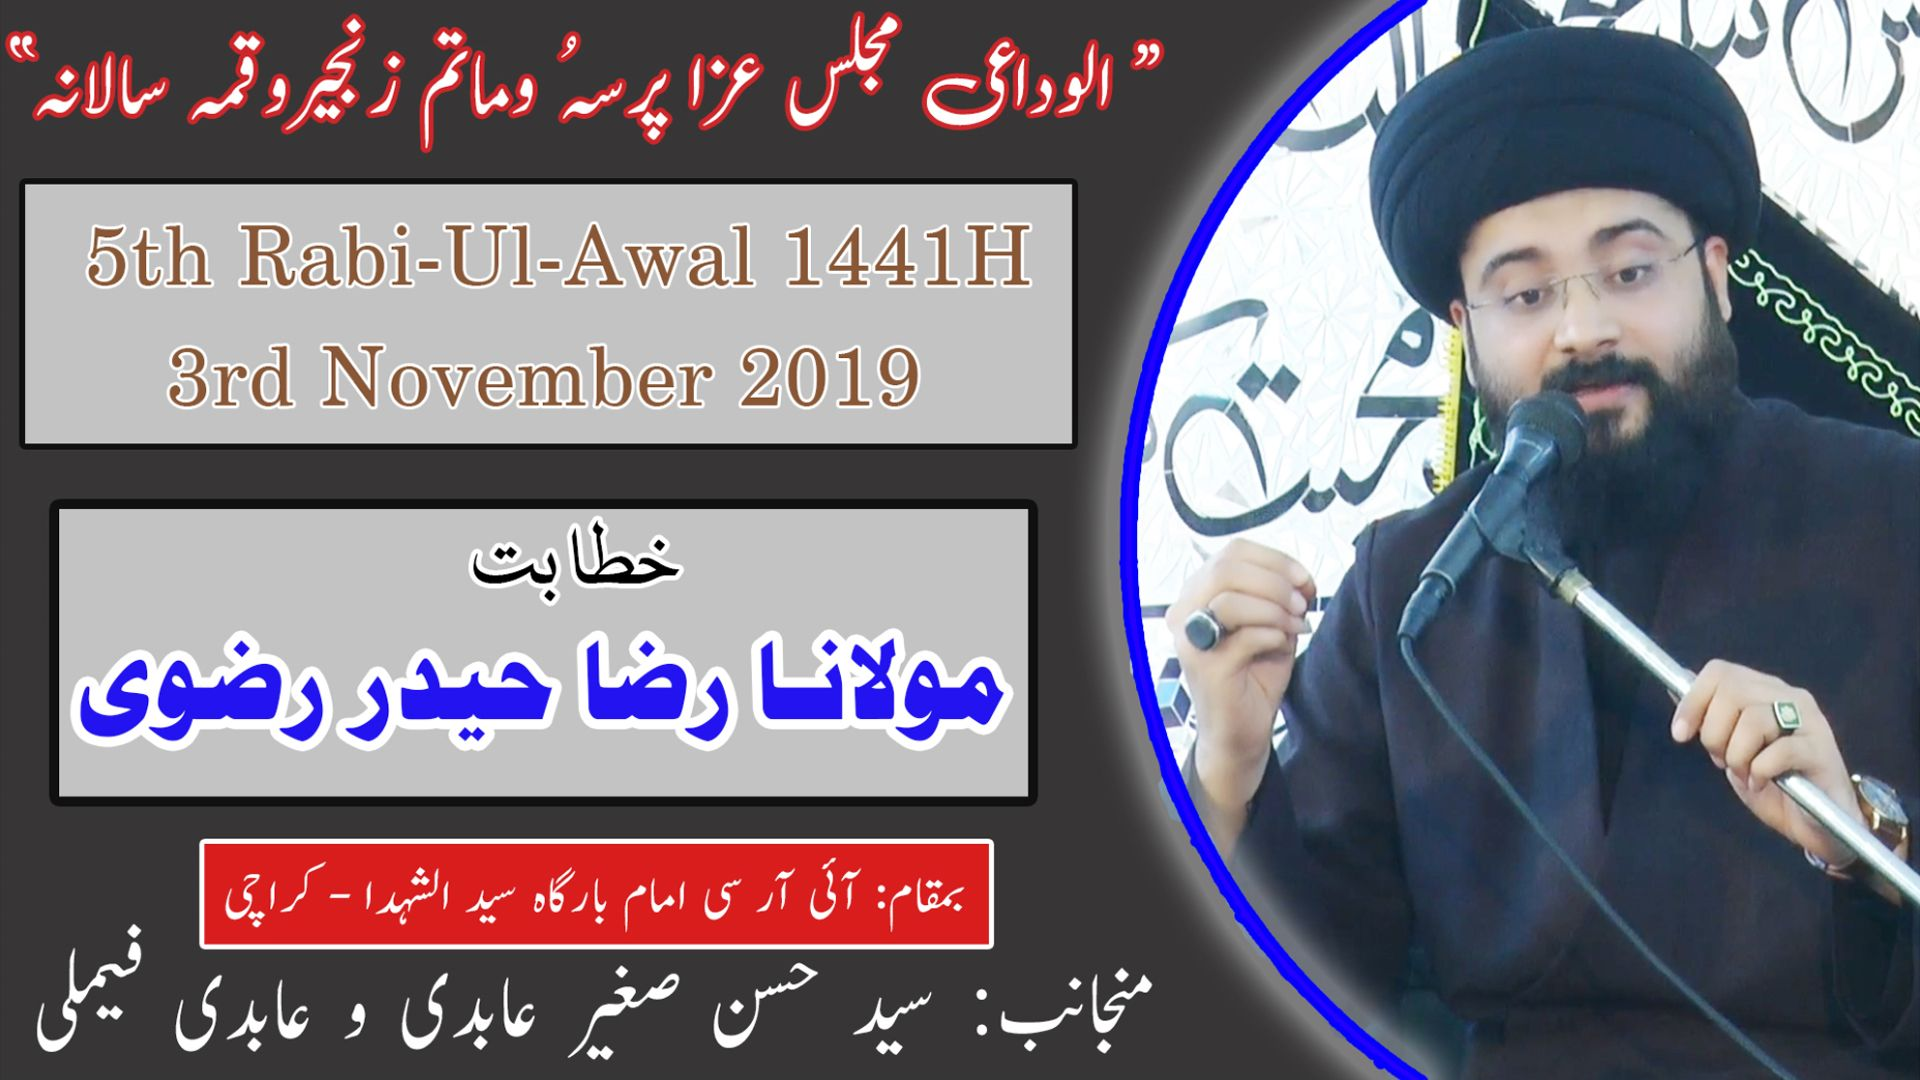 Majlis | Moulana Raza Haider | 5th Rabi Awal 1441/2019 - Imam Bargah Islamic Research Center - Karachi